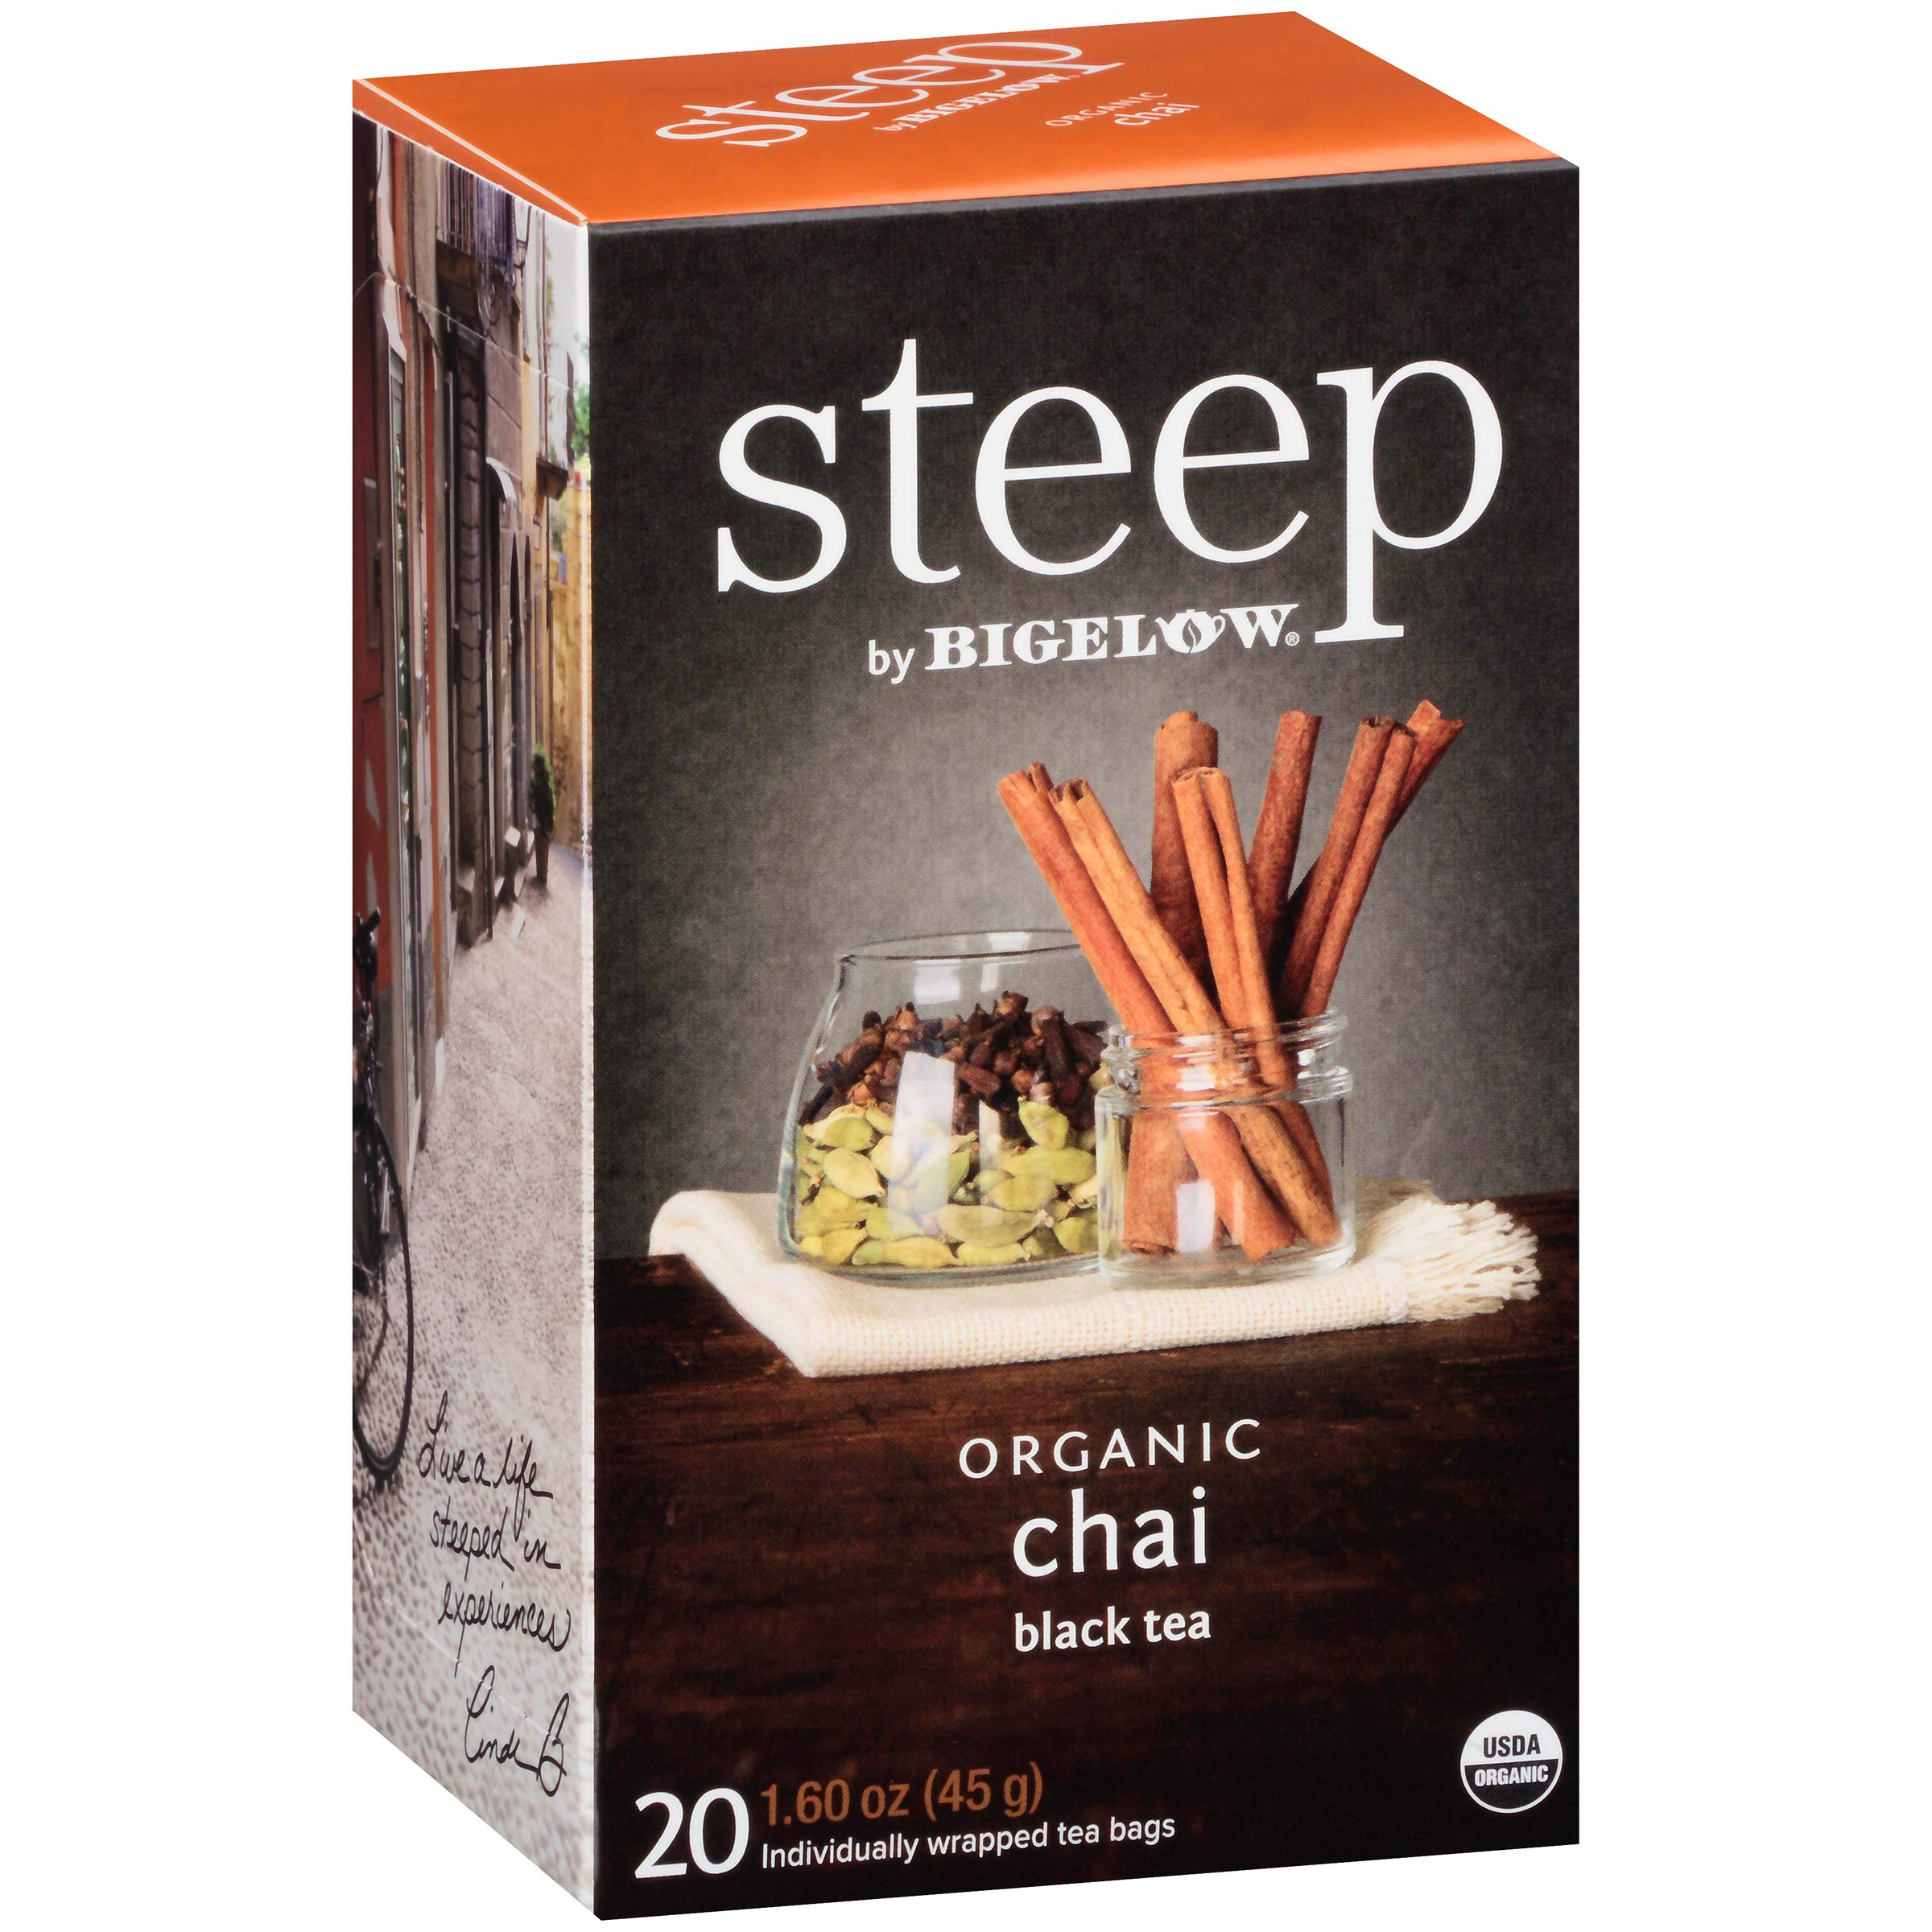 Steep by Bigelow Organic Chai Tea 20 Count (Pack of 6), 120 Tea Bags Total.  Organic Caffeinated Individual Black Tea Bags, for Hot Tea or Iced Tea, Drink Plain or Sweetened with Honey or Sugar